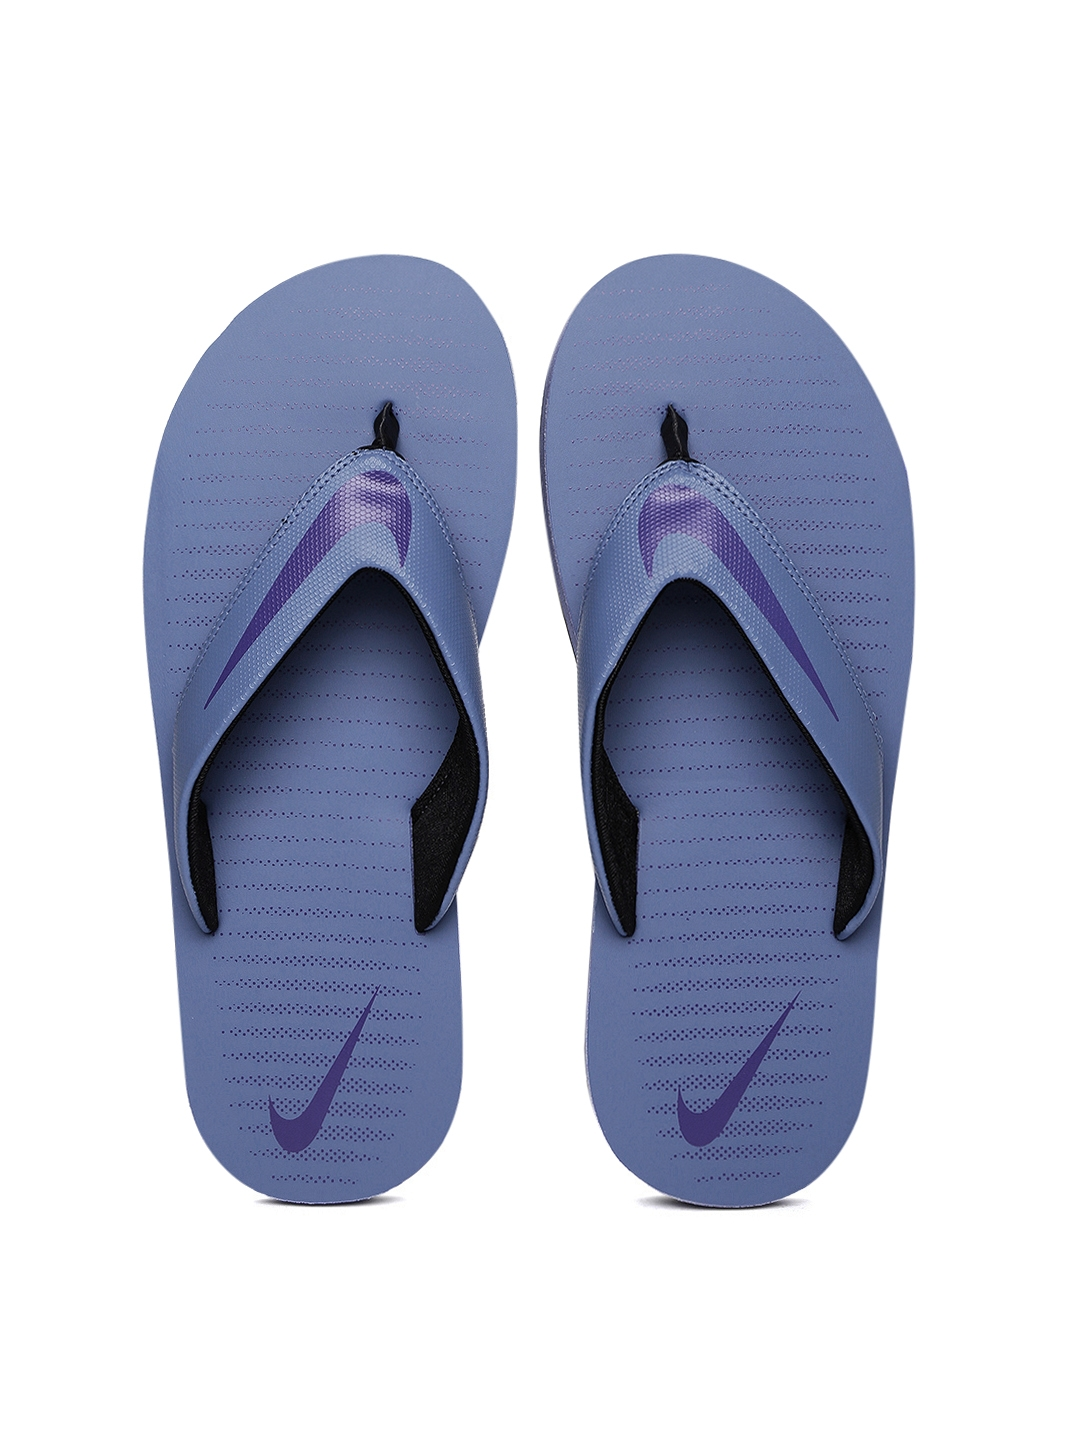 4ef6af72e Buy Nike Men Blue Chroma Thong 5 Flip Flops - Flip Flops for Men ...